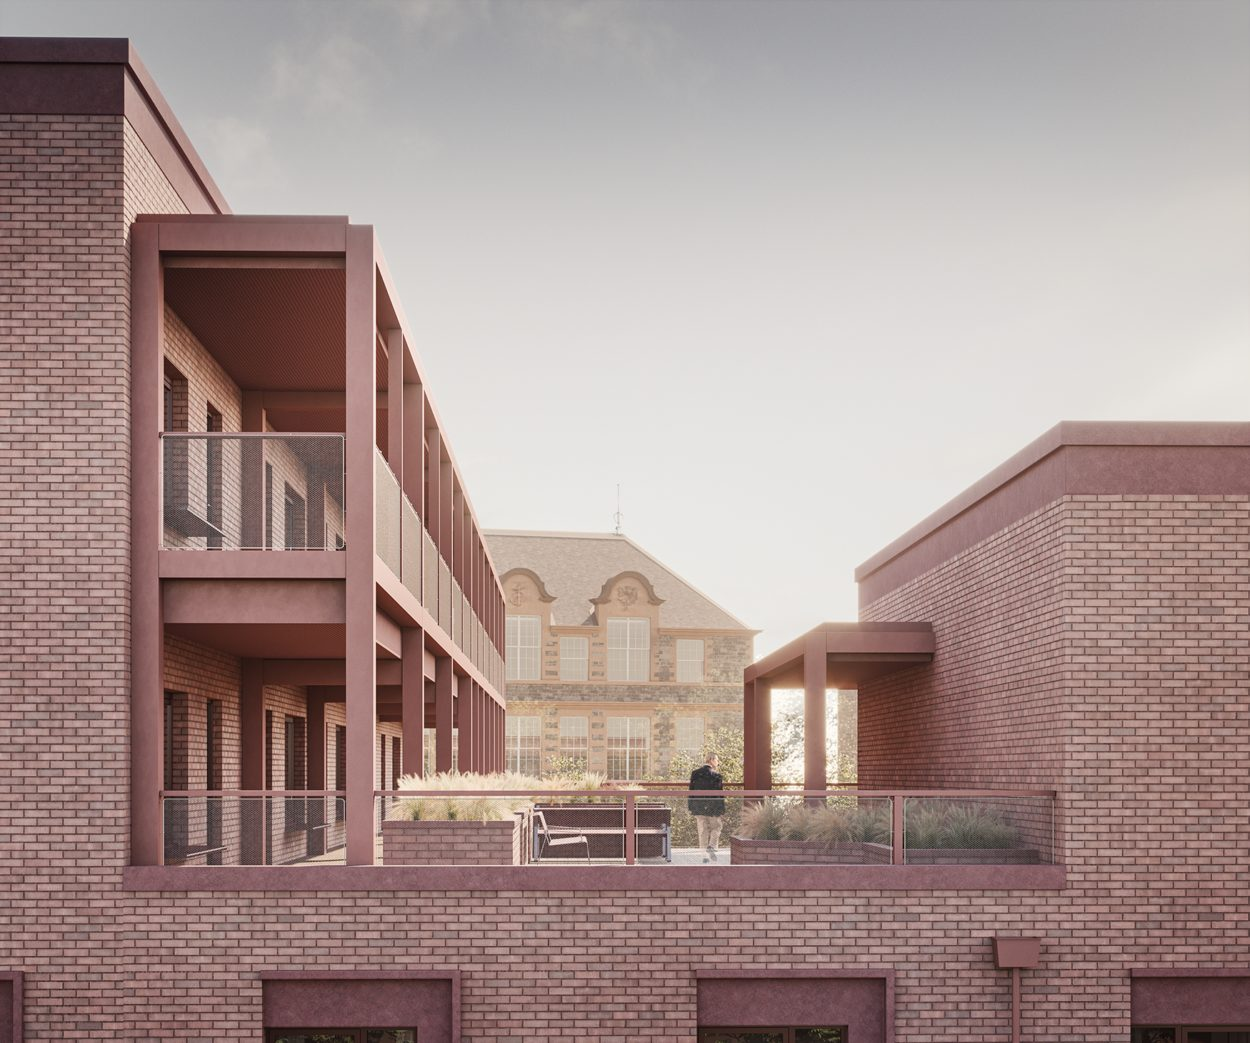 Powderhall Intergenerational and Passivhaus facility